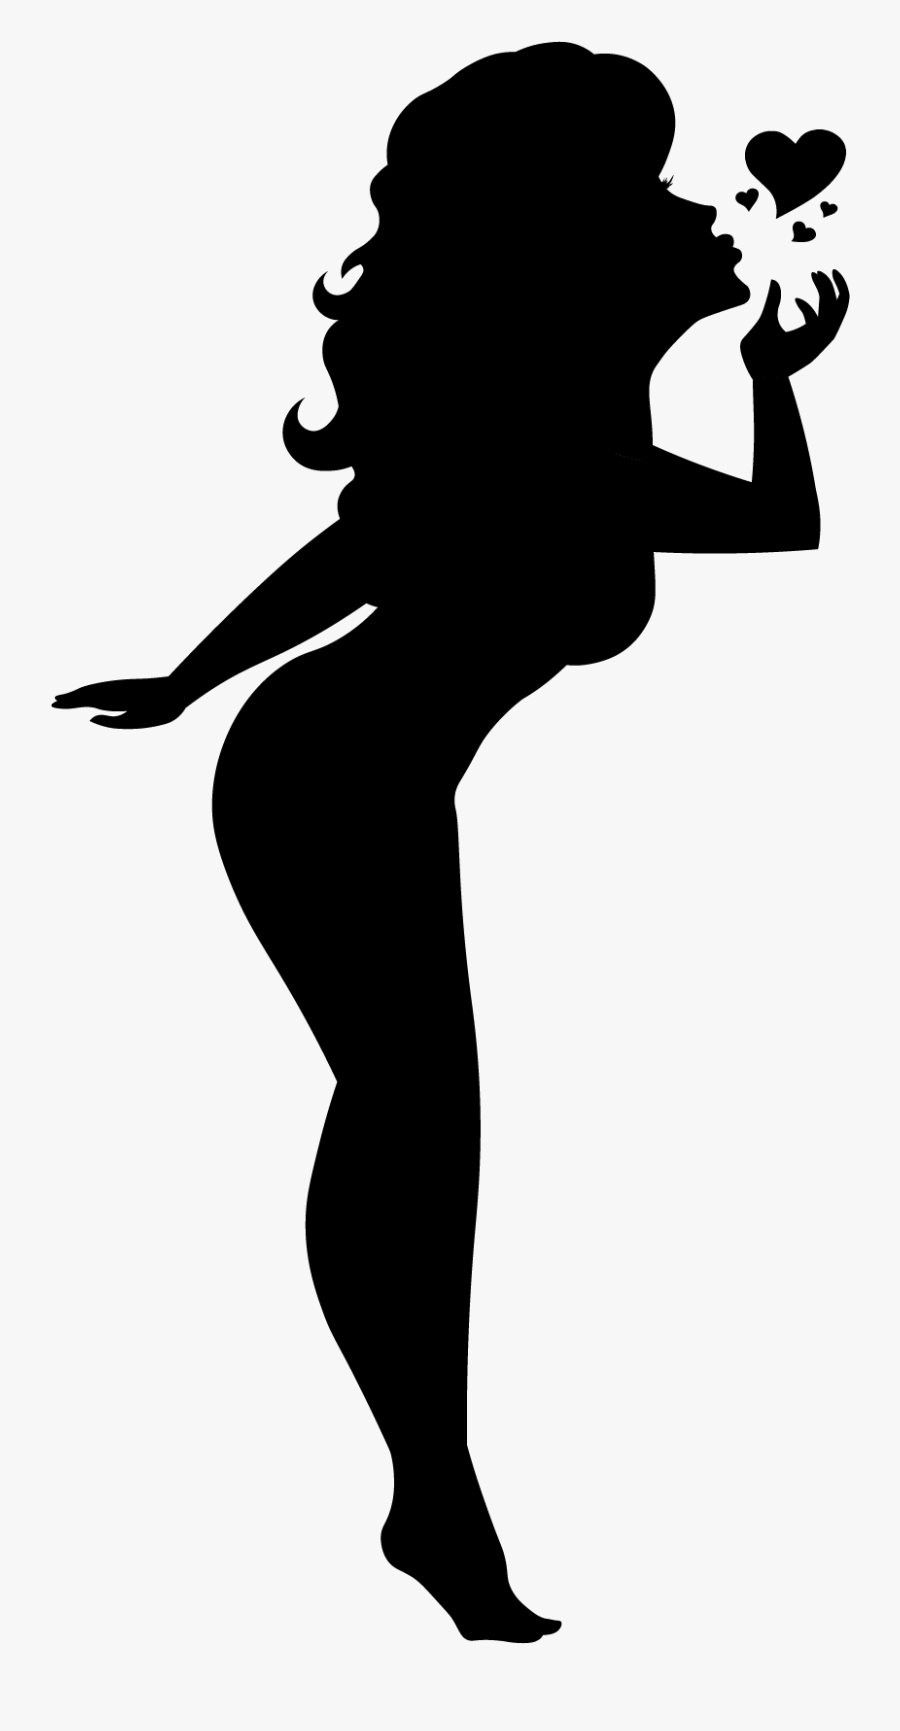 Blowing A Kiss Silhouette Pinup Girl Black Cutout Pin - Girl Blowing A Kiss Silhouette, Transparent Clipart